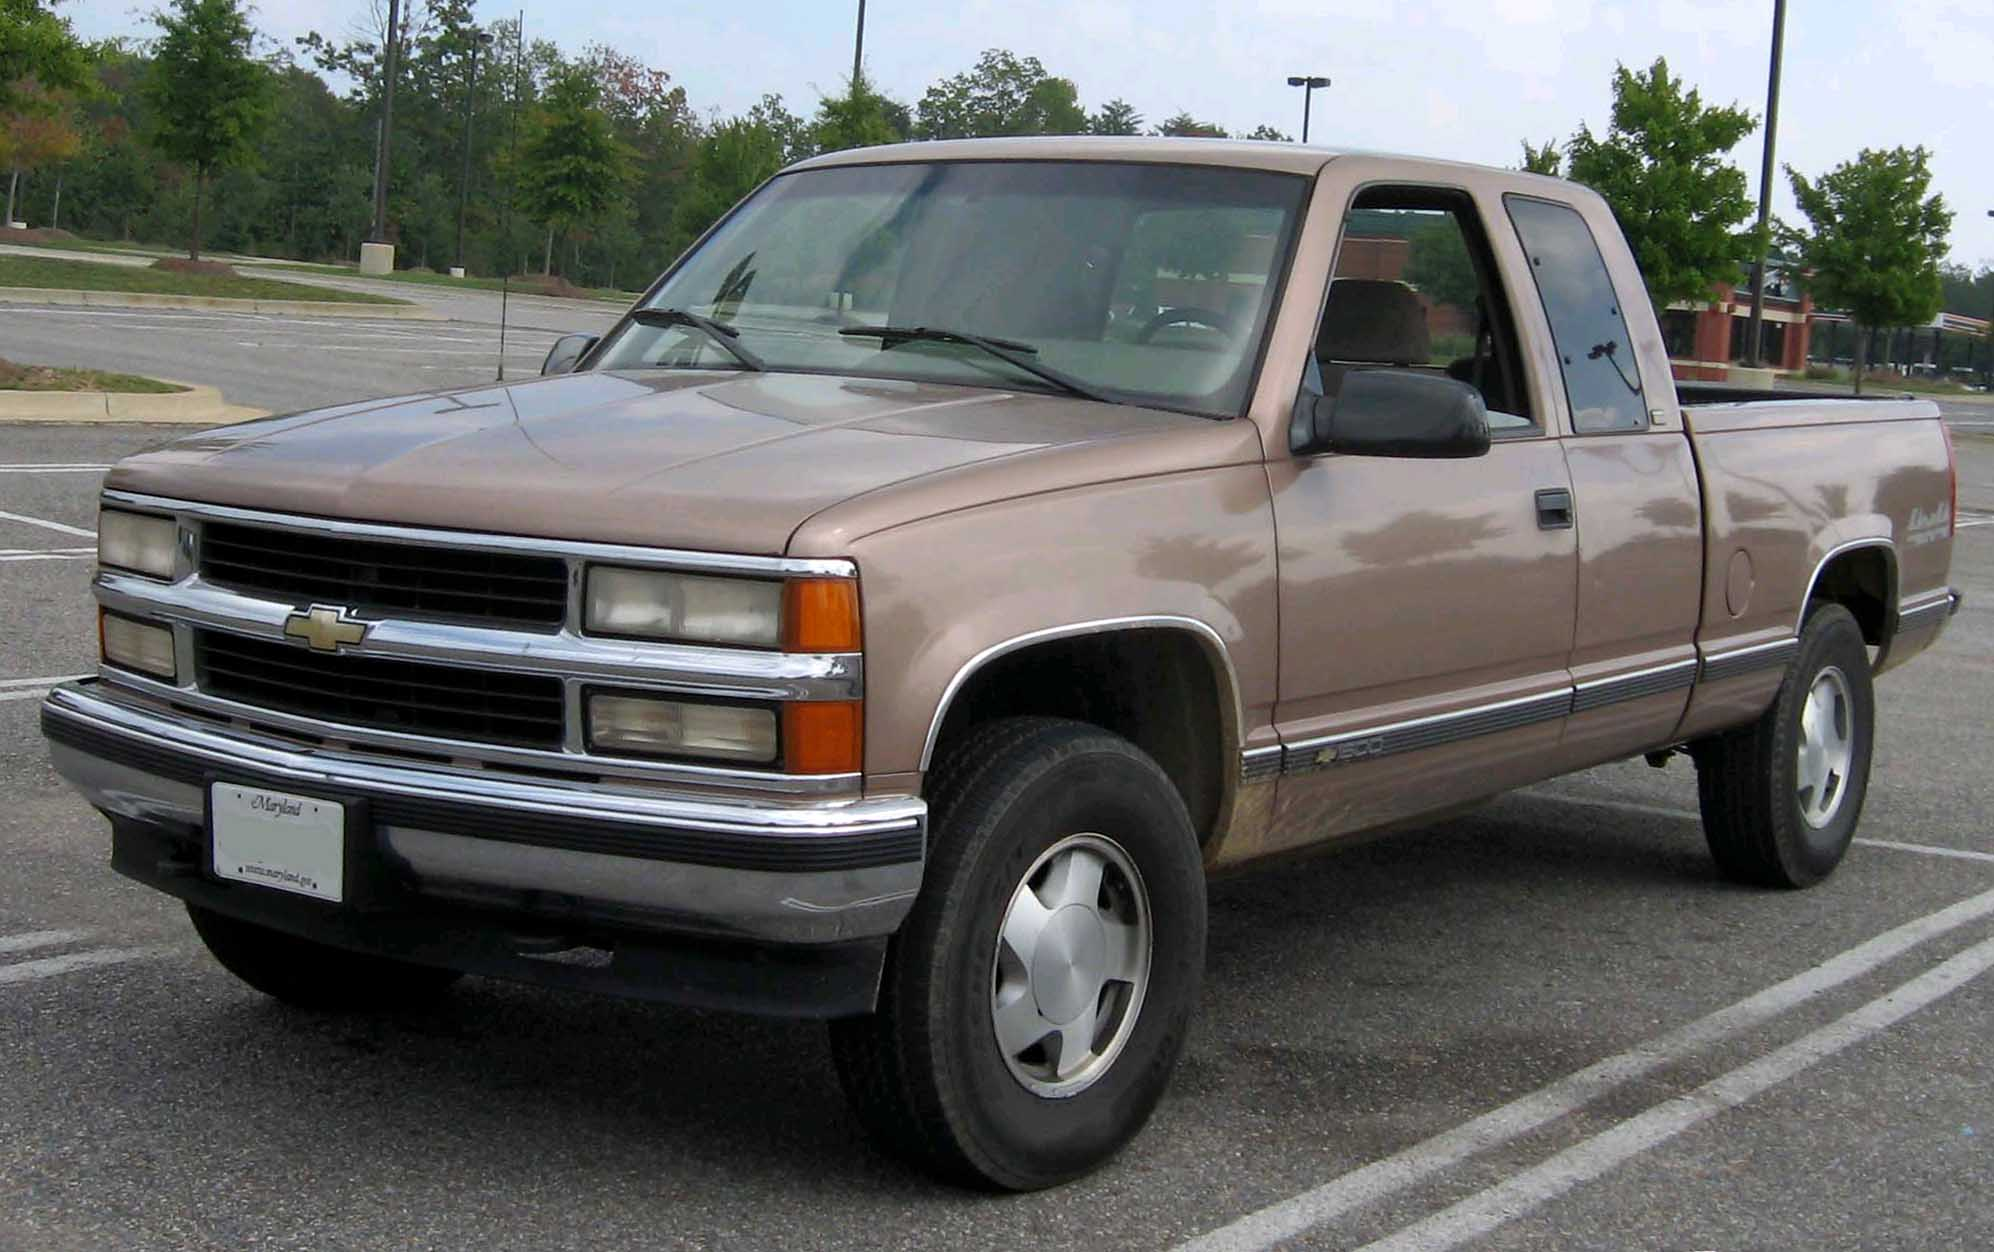 Chevrolet C/K 2500 Series HD Silverado #2